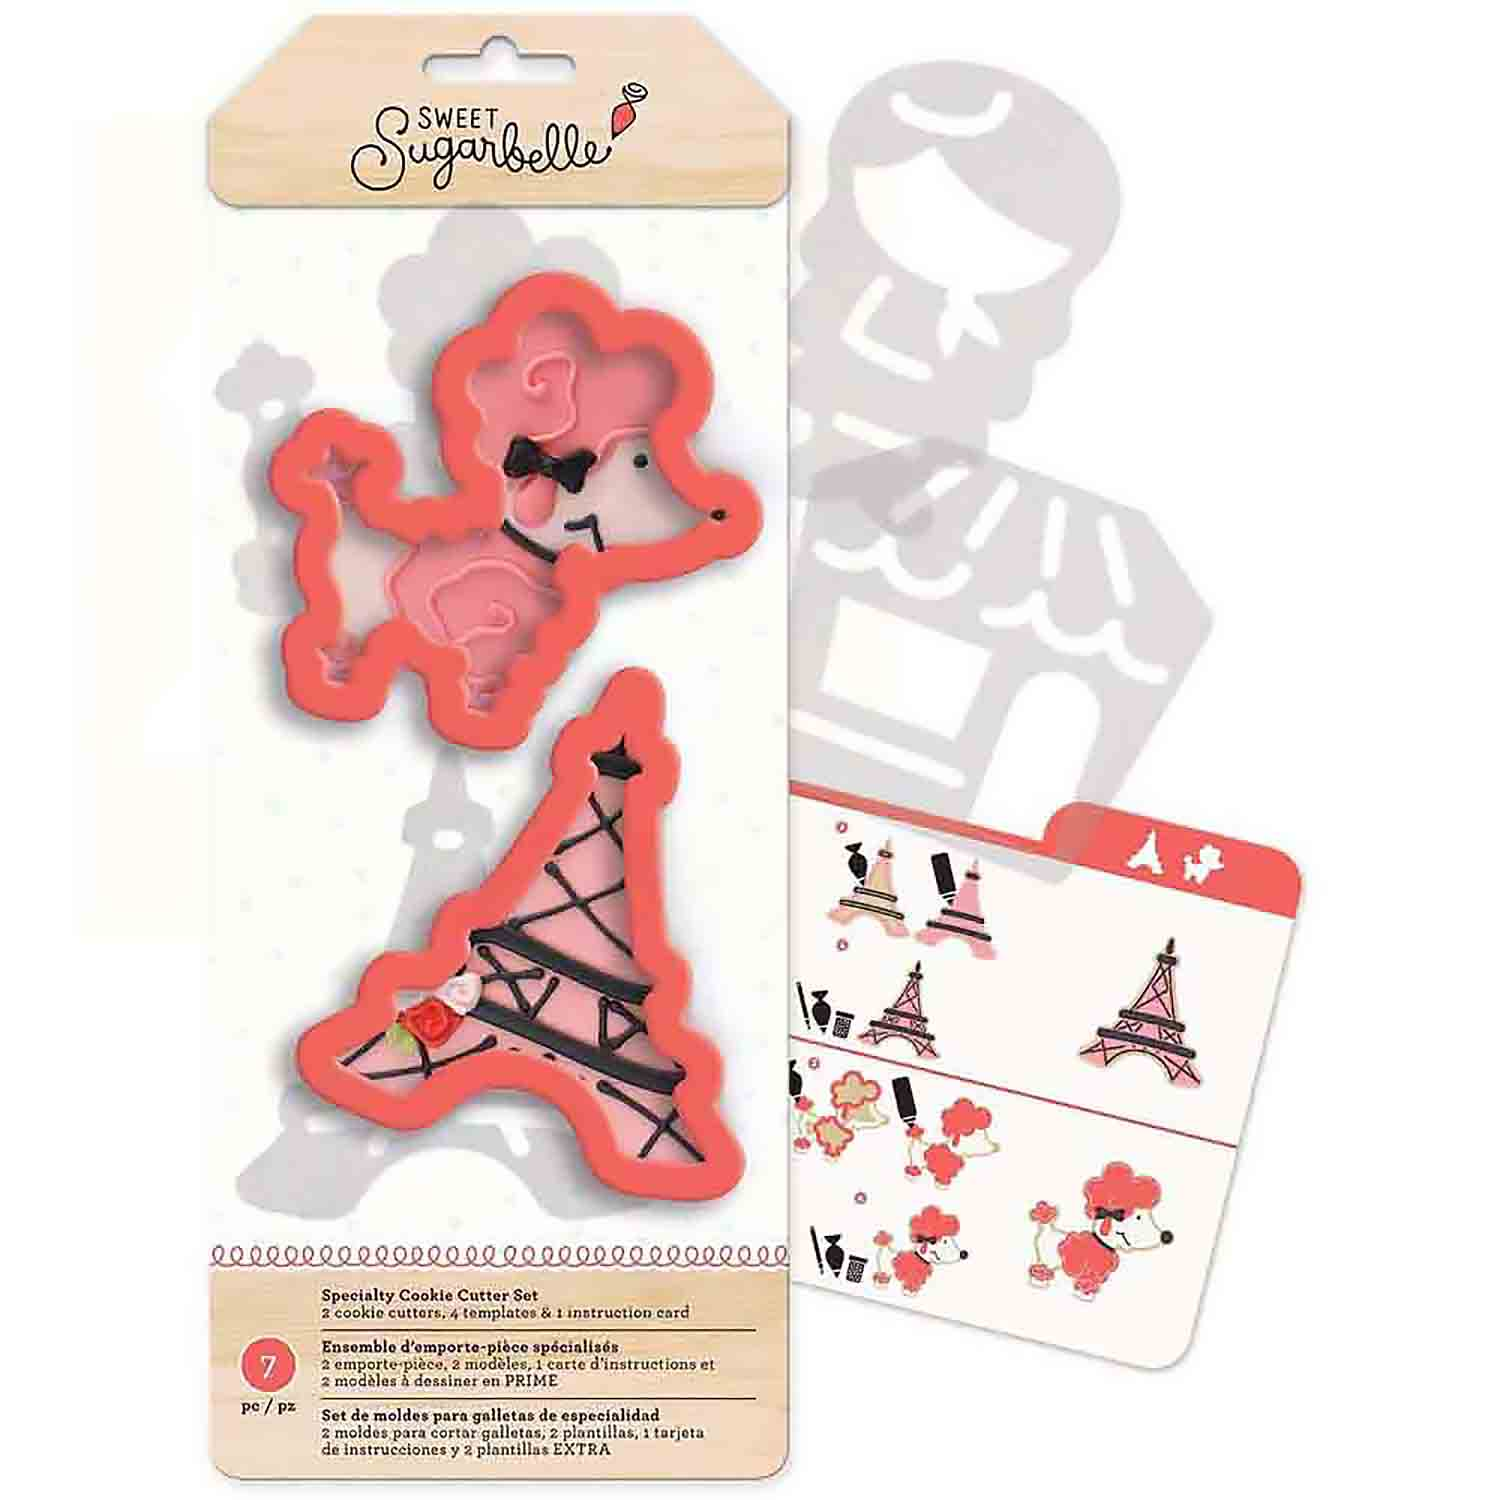 Ooh La La Cookie Cutter Stencil Set